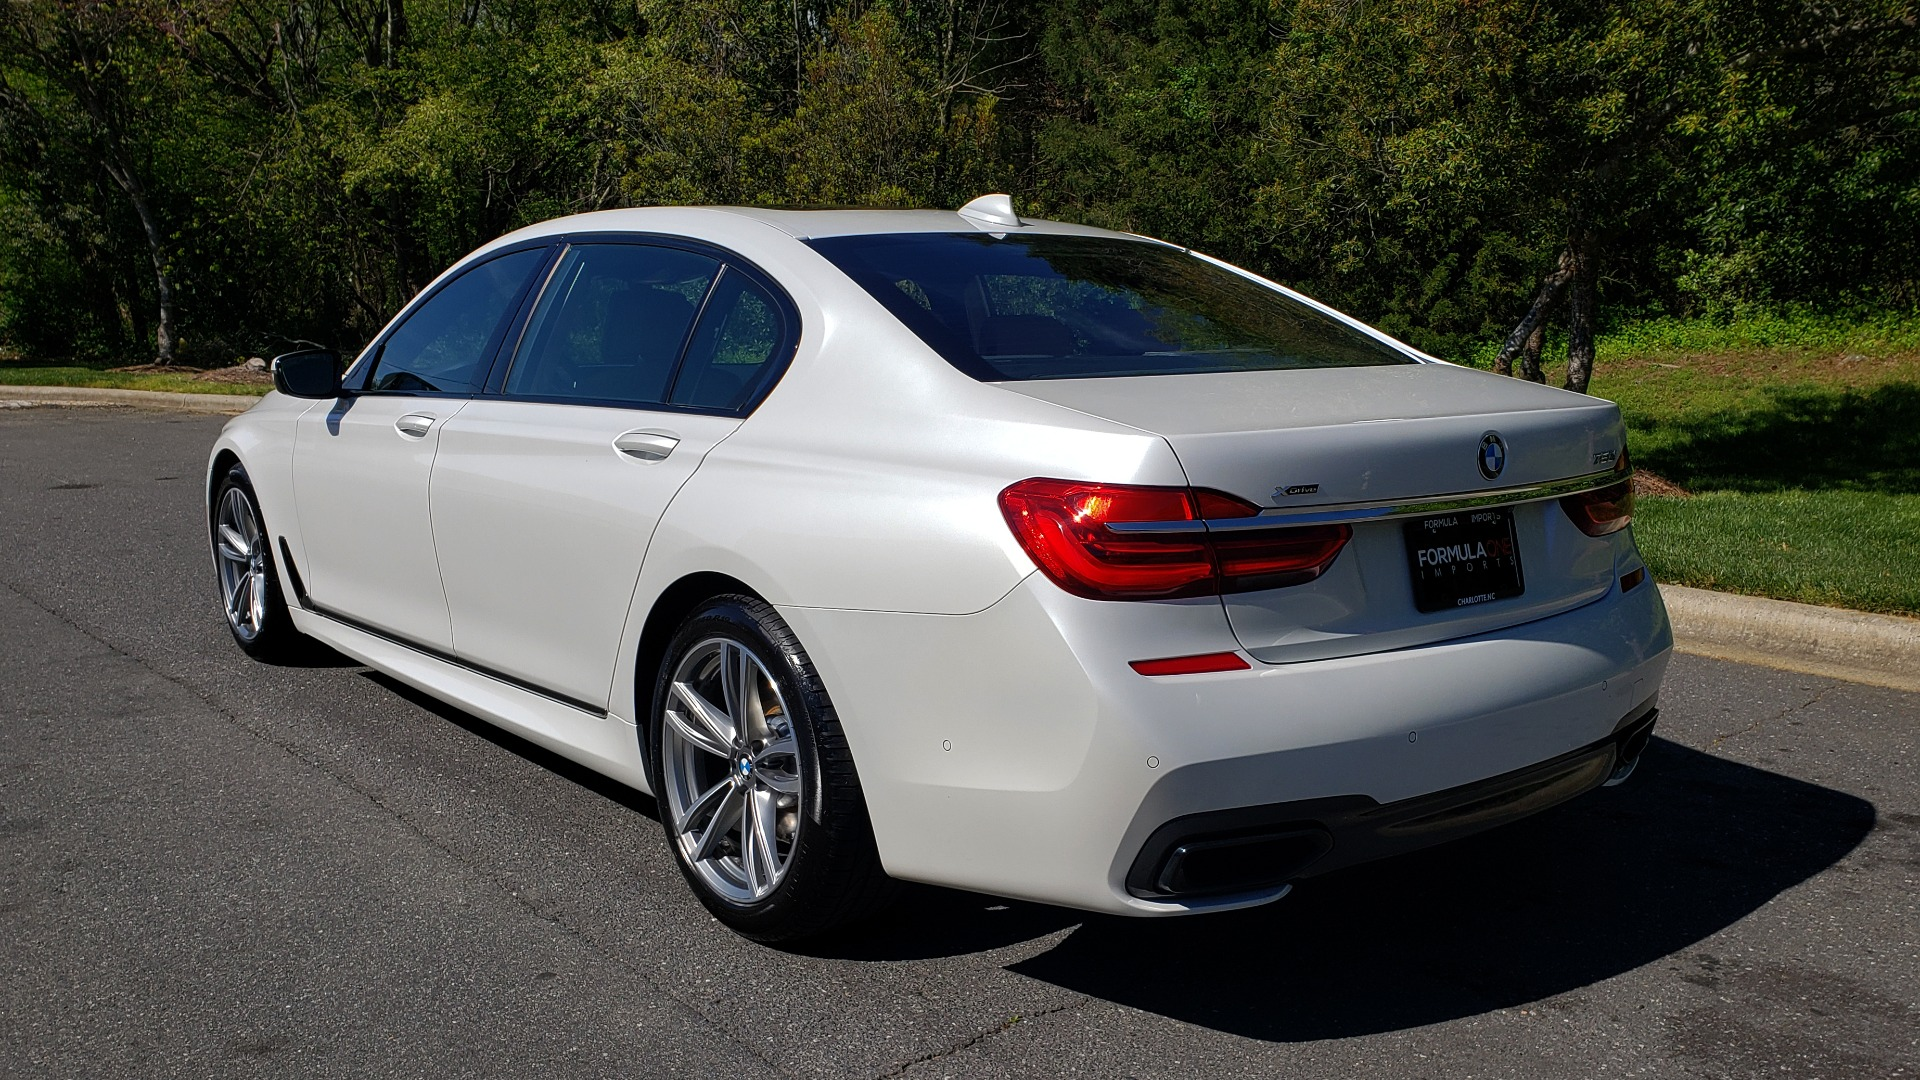 Used 2017 BMW 7 SERIES 750I XDRIVE / M-SPORT / EXEC PKG / DRVR ASST PLUS II / CLD WTHR for sale $48,495 at Formula Imports in Charlotte NC 28227 3